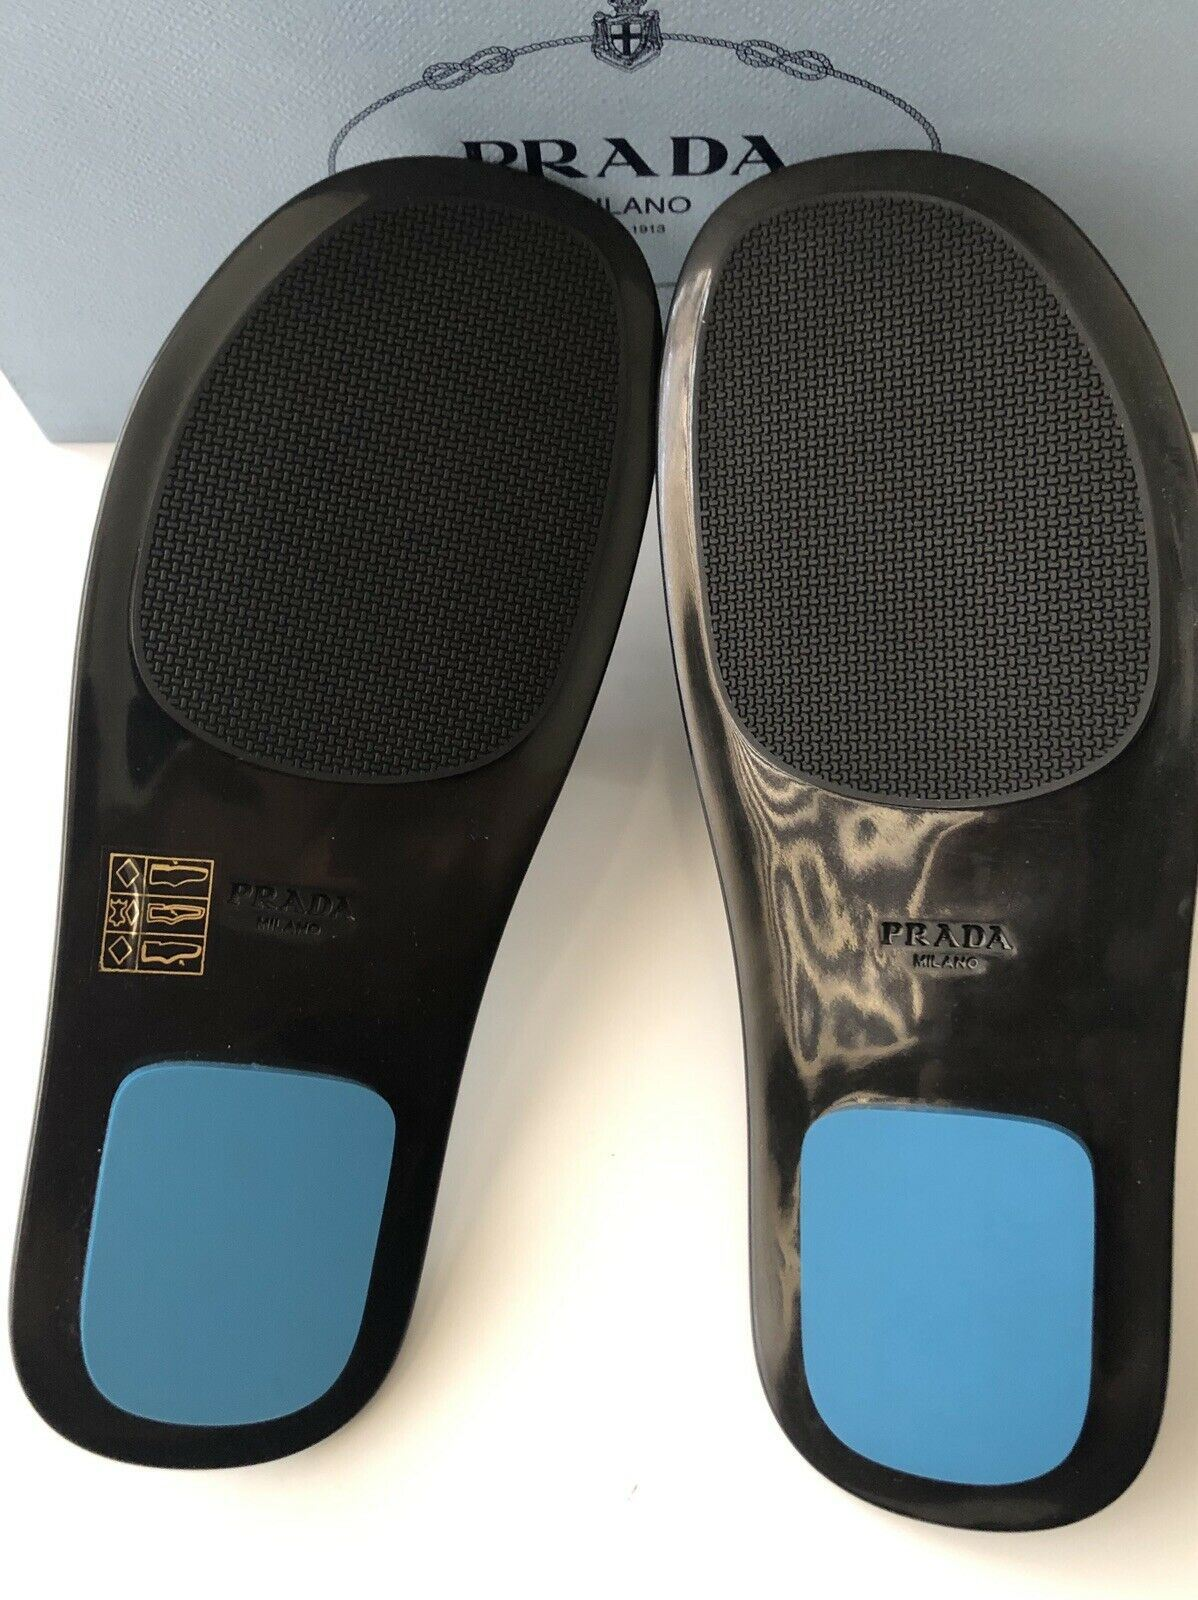 NIB $660 PRADA Milano Women's Black Rubber Sandals 6.5 US 1XX344 Made in Italy